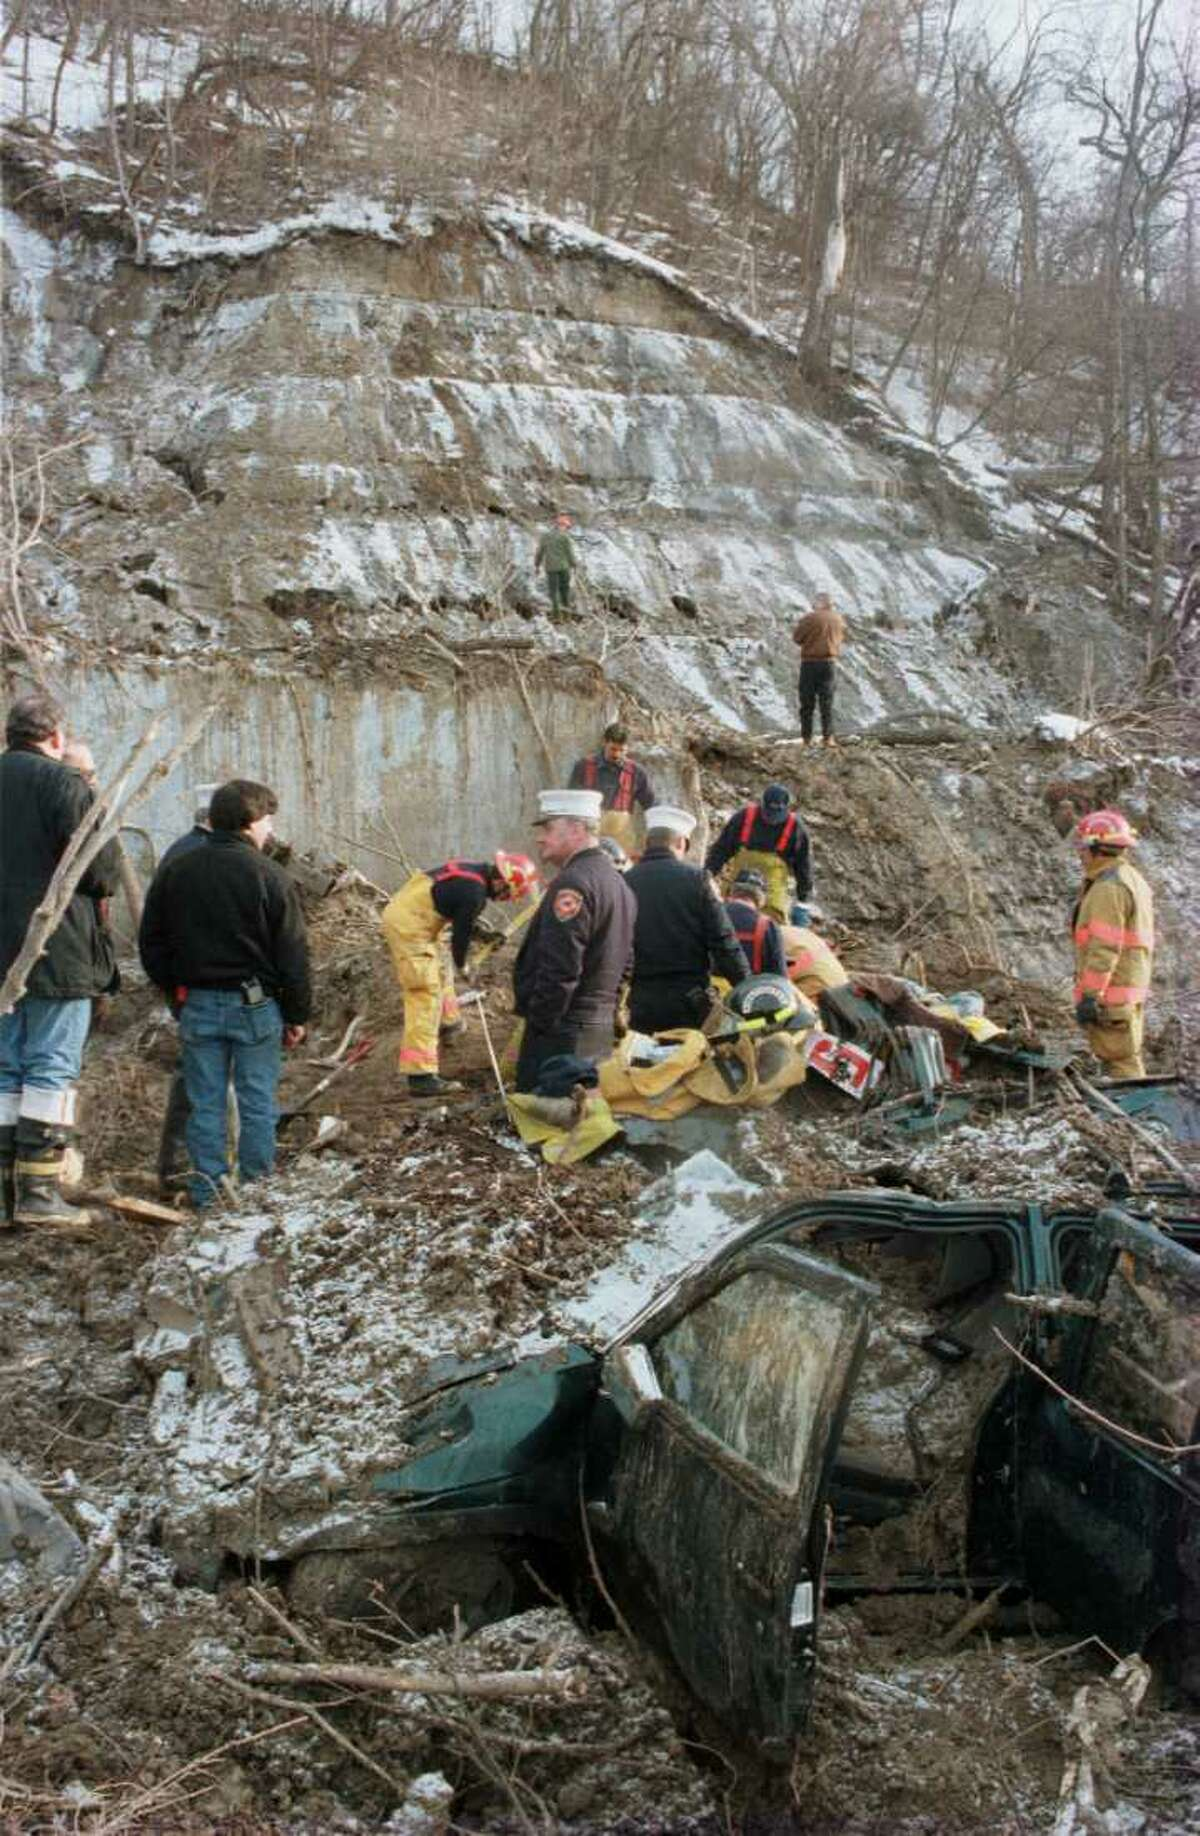 Schenectady firefighters and rescue personnel dig for further evidence and possible victims at scene of Broadway mudslide on Monday Jan. 22, 1996, in Schenectady, N.Y. (Jack Madigan/Times Union archive)